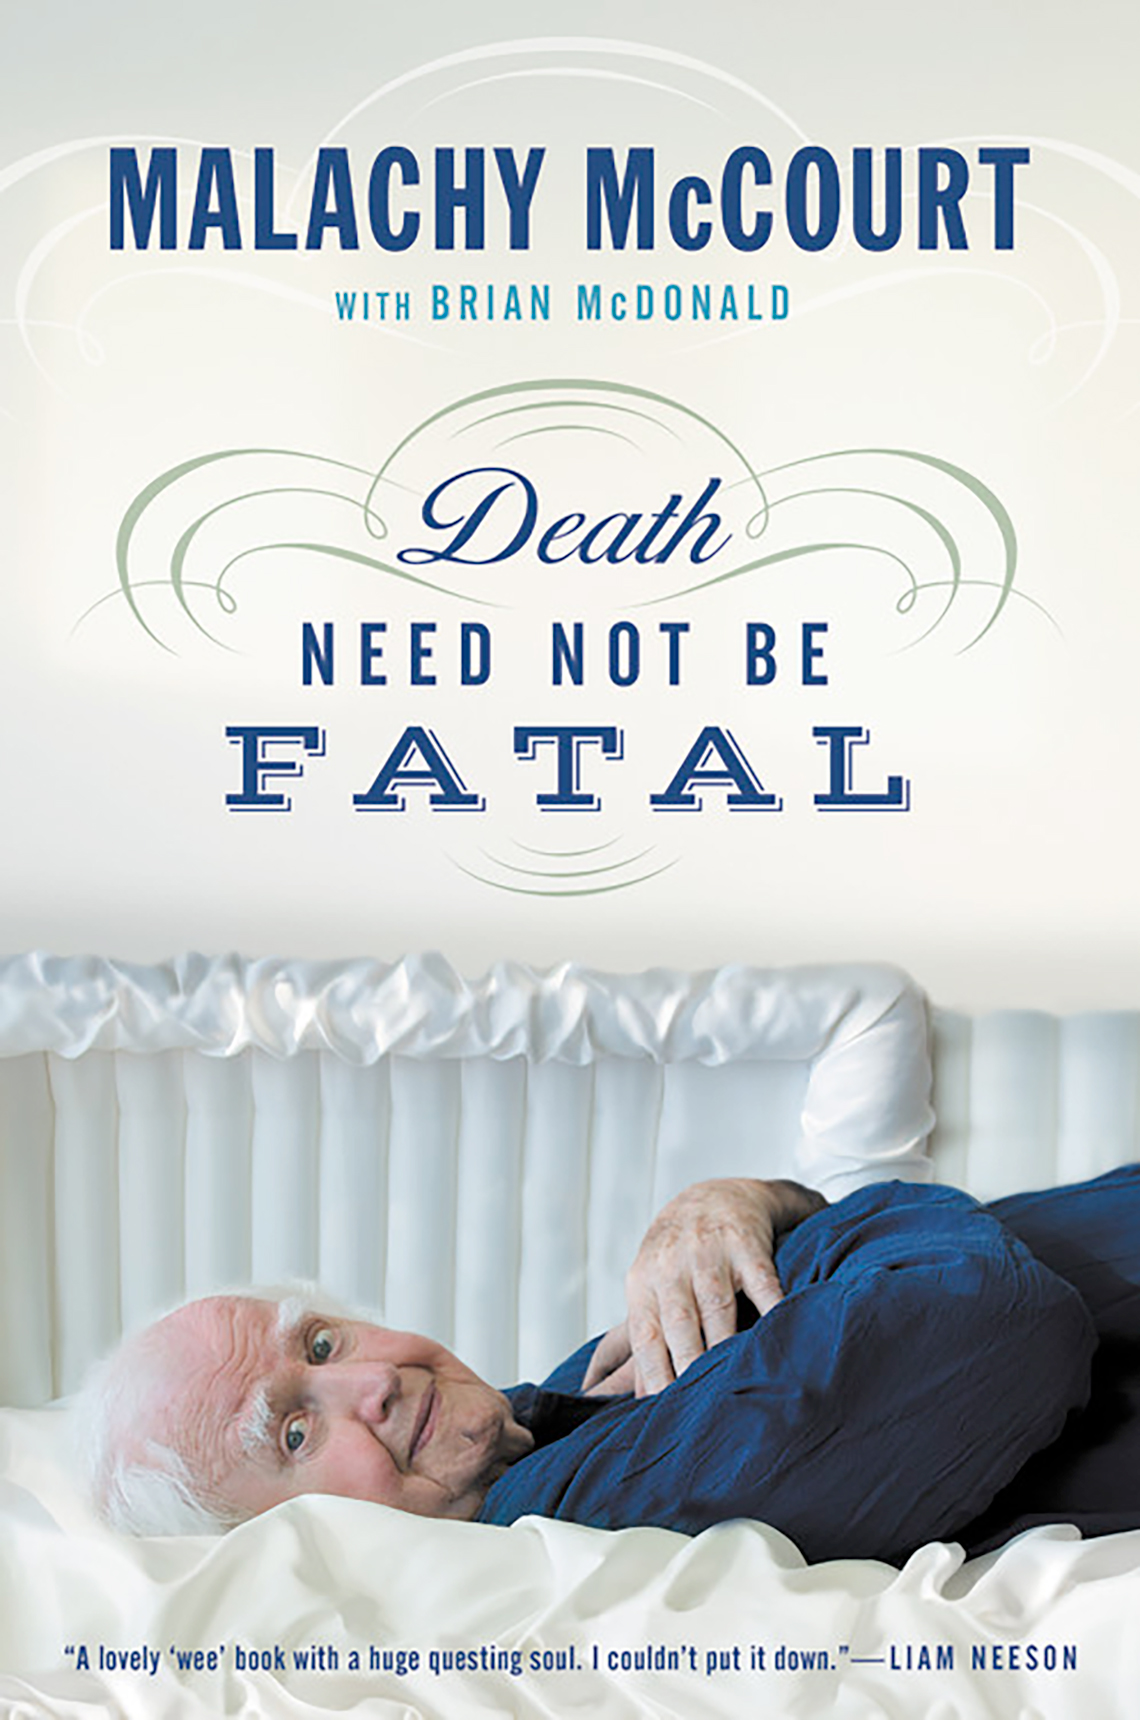 Death Need not be Fatal, by Malachy McCourt with Brian McDonald